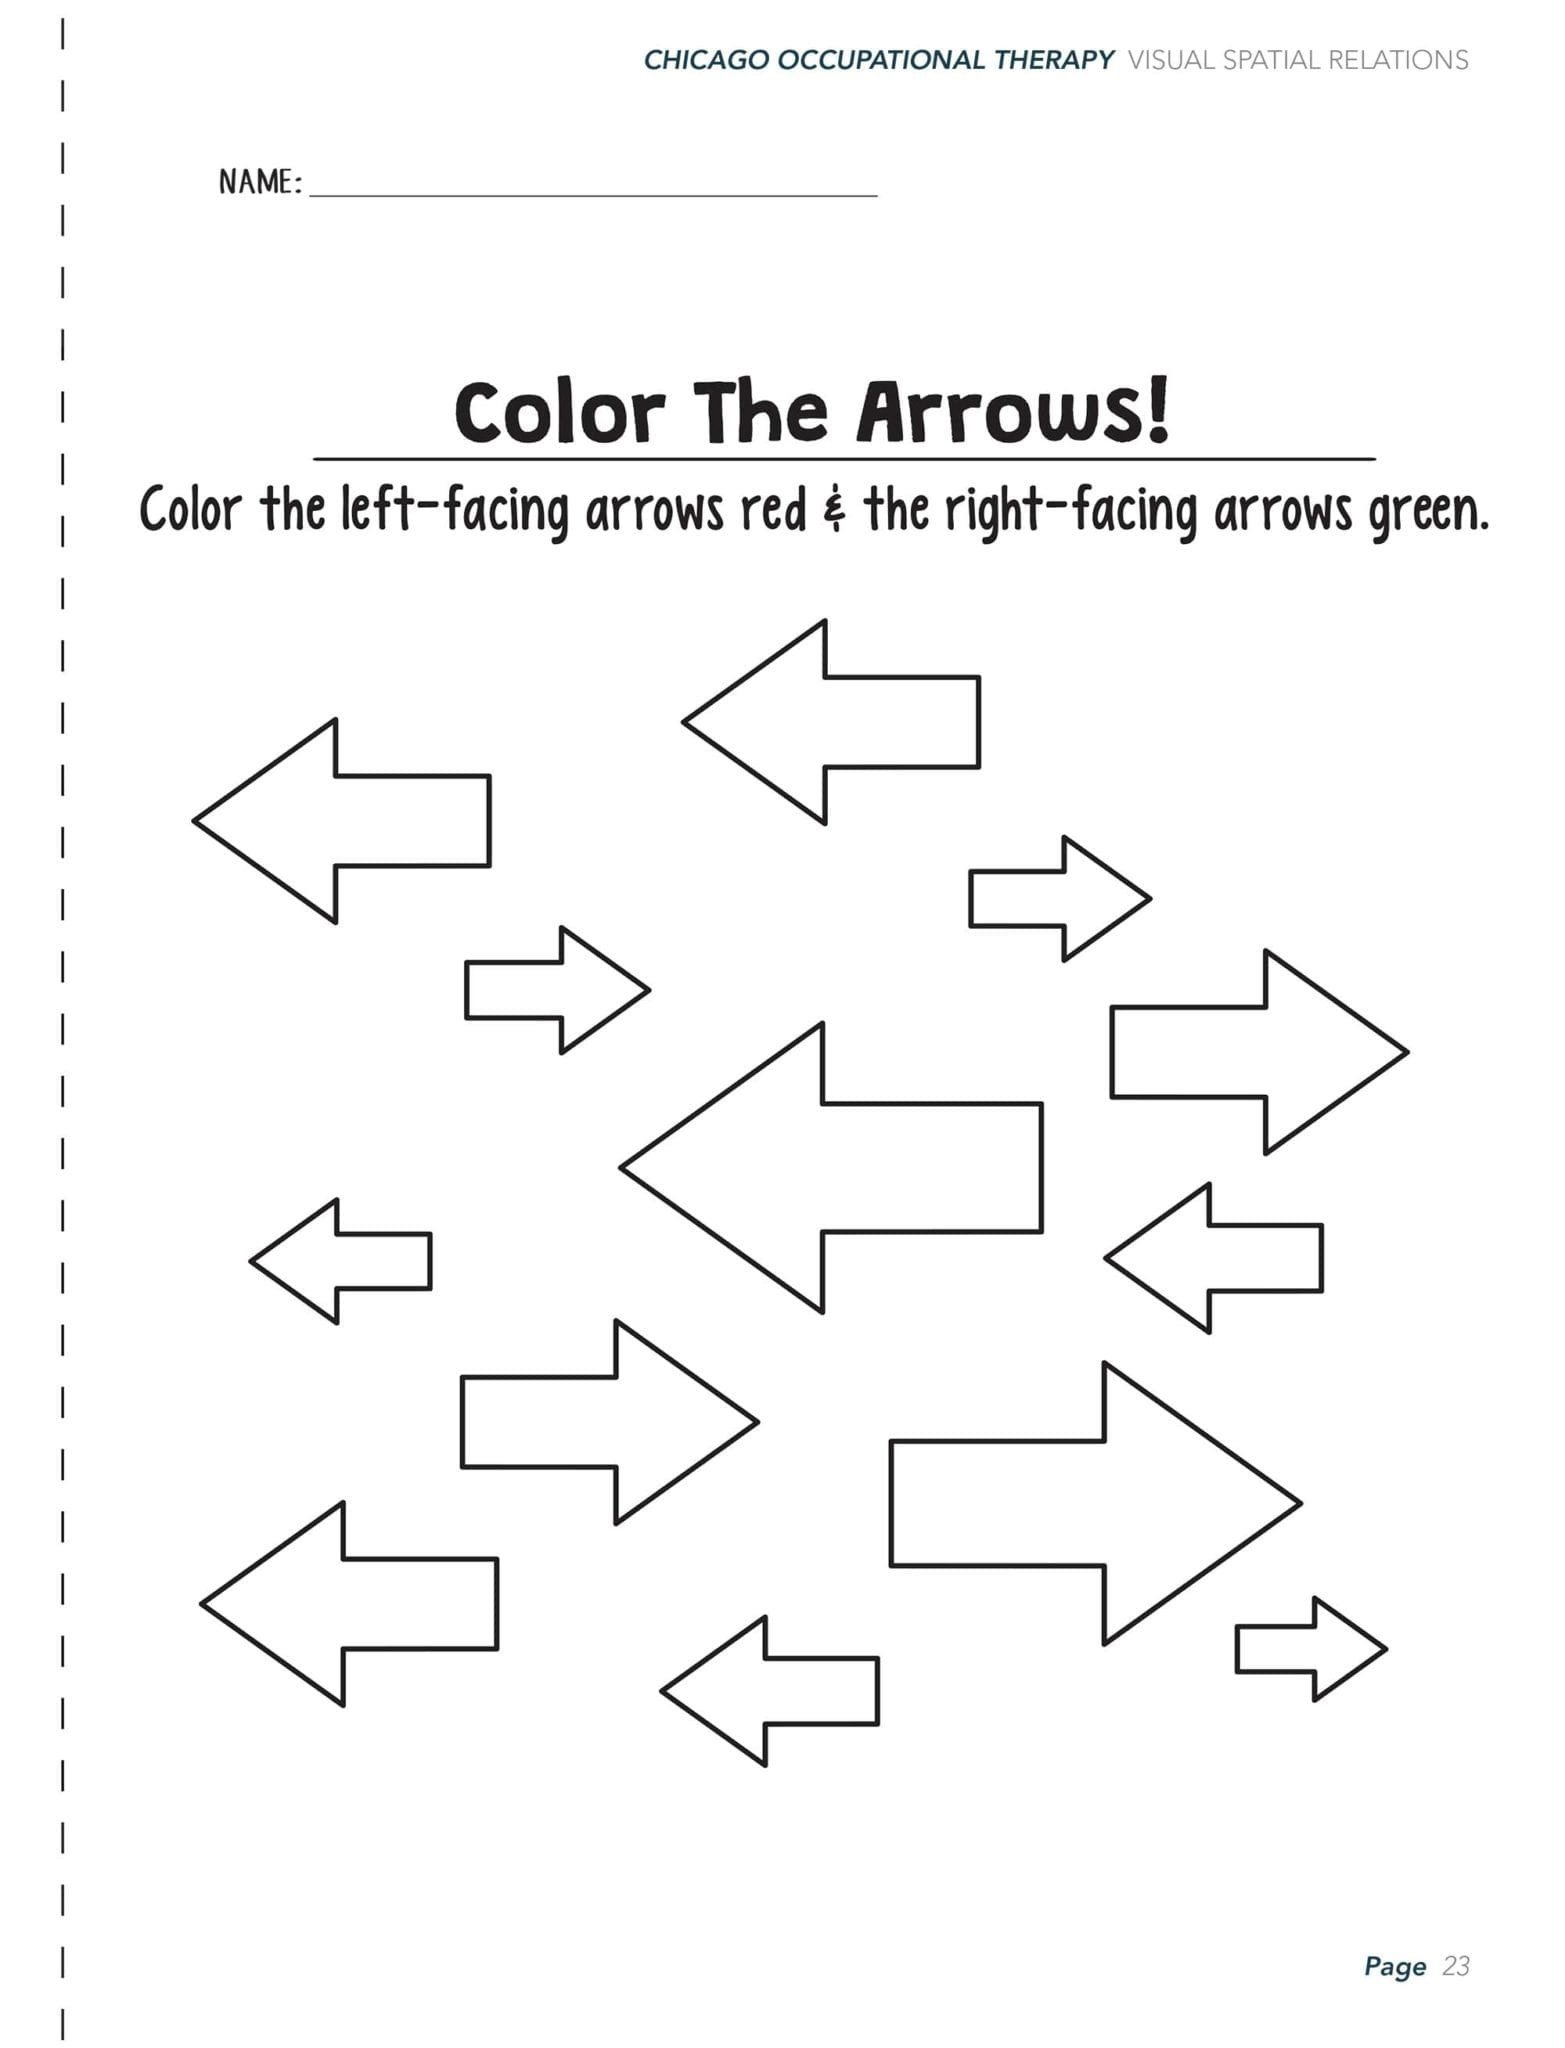 20 Spatial Relations Worksheets